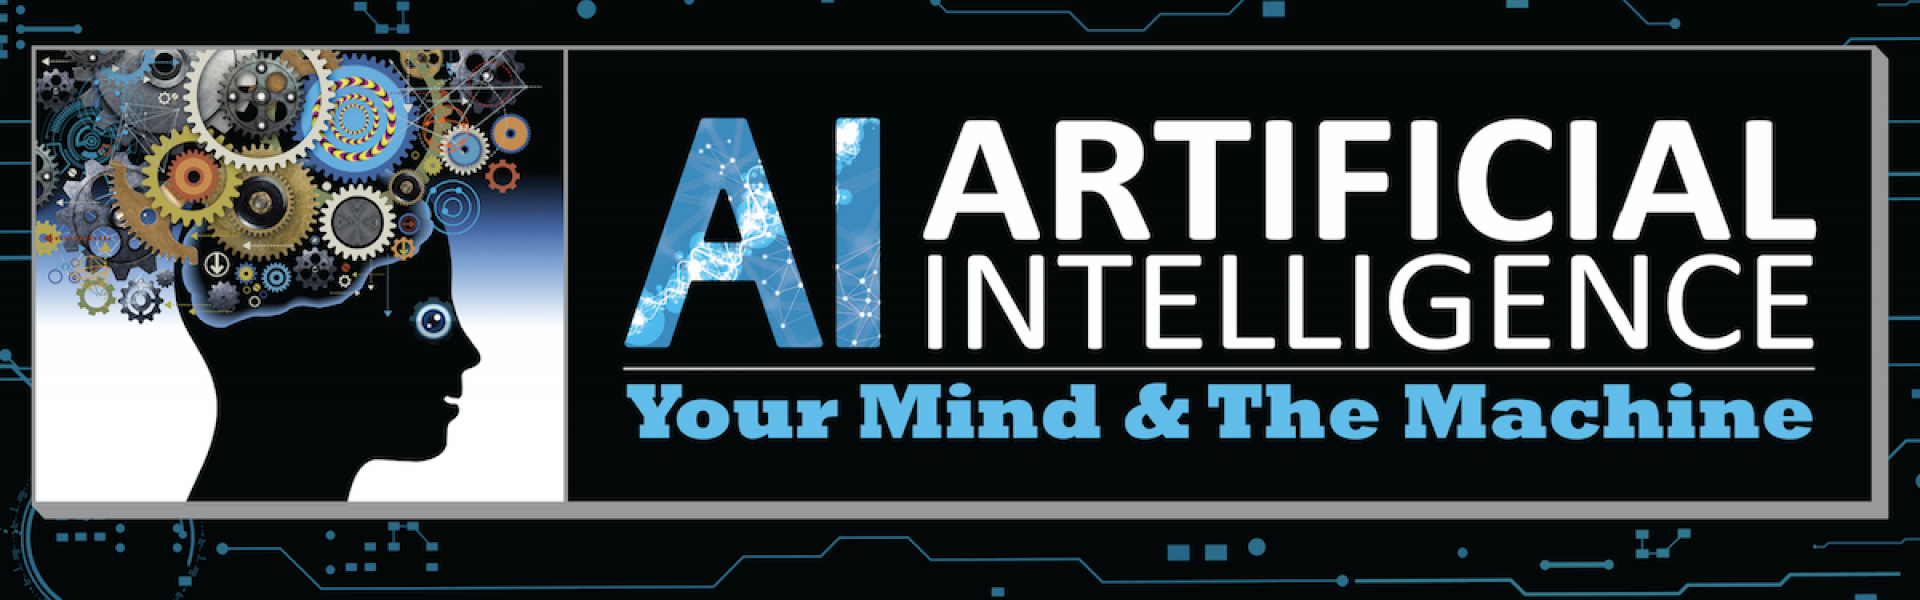 Artificial Intelligence: Your Mind & The Machine